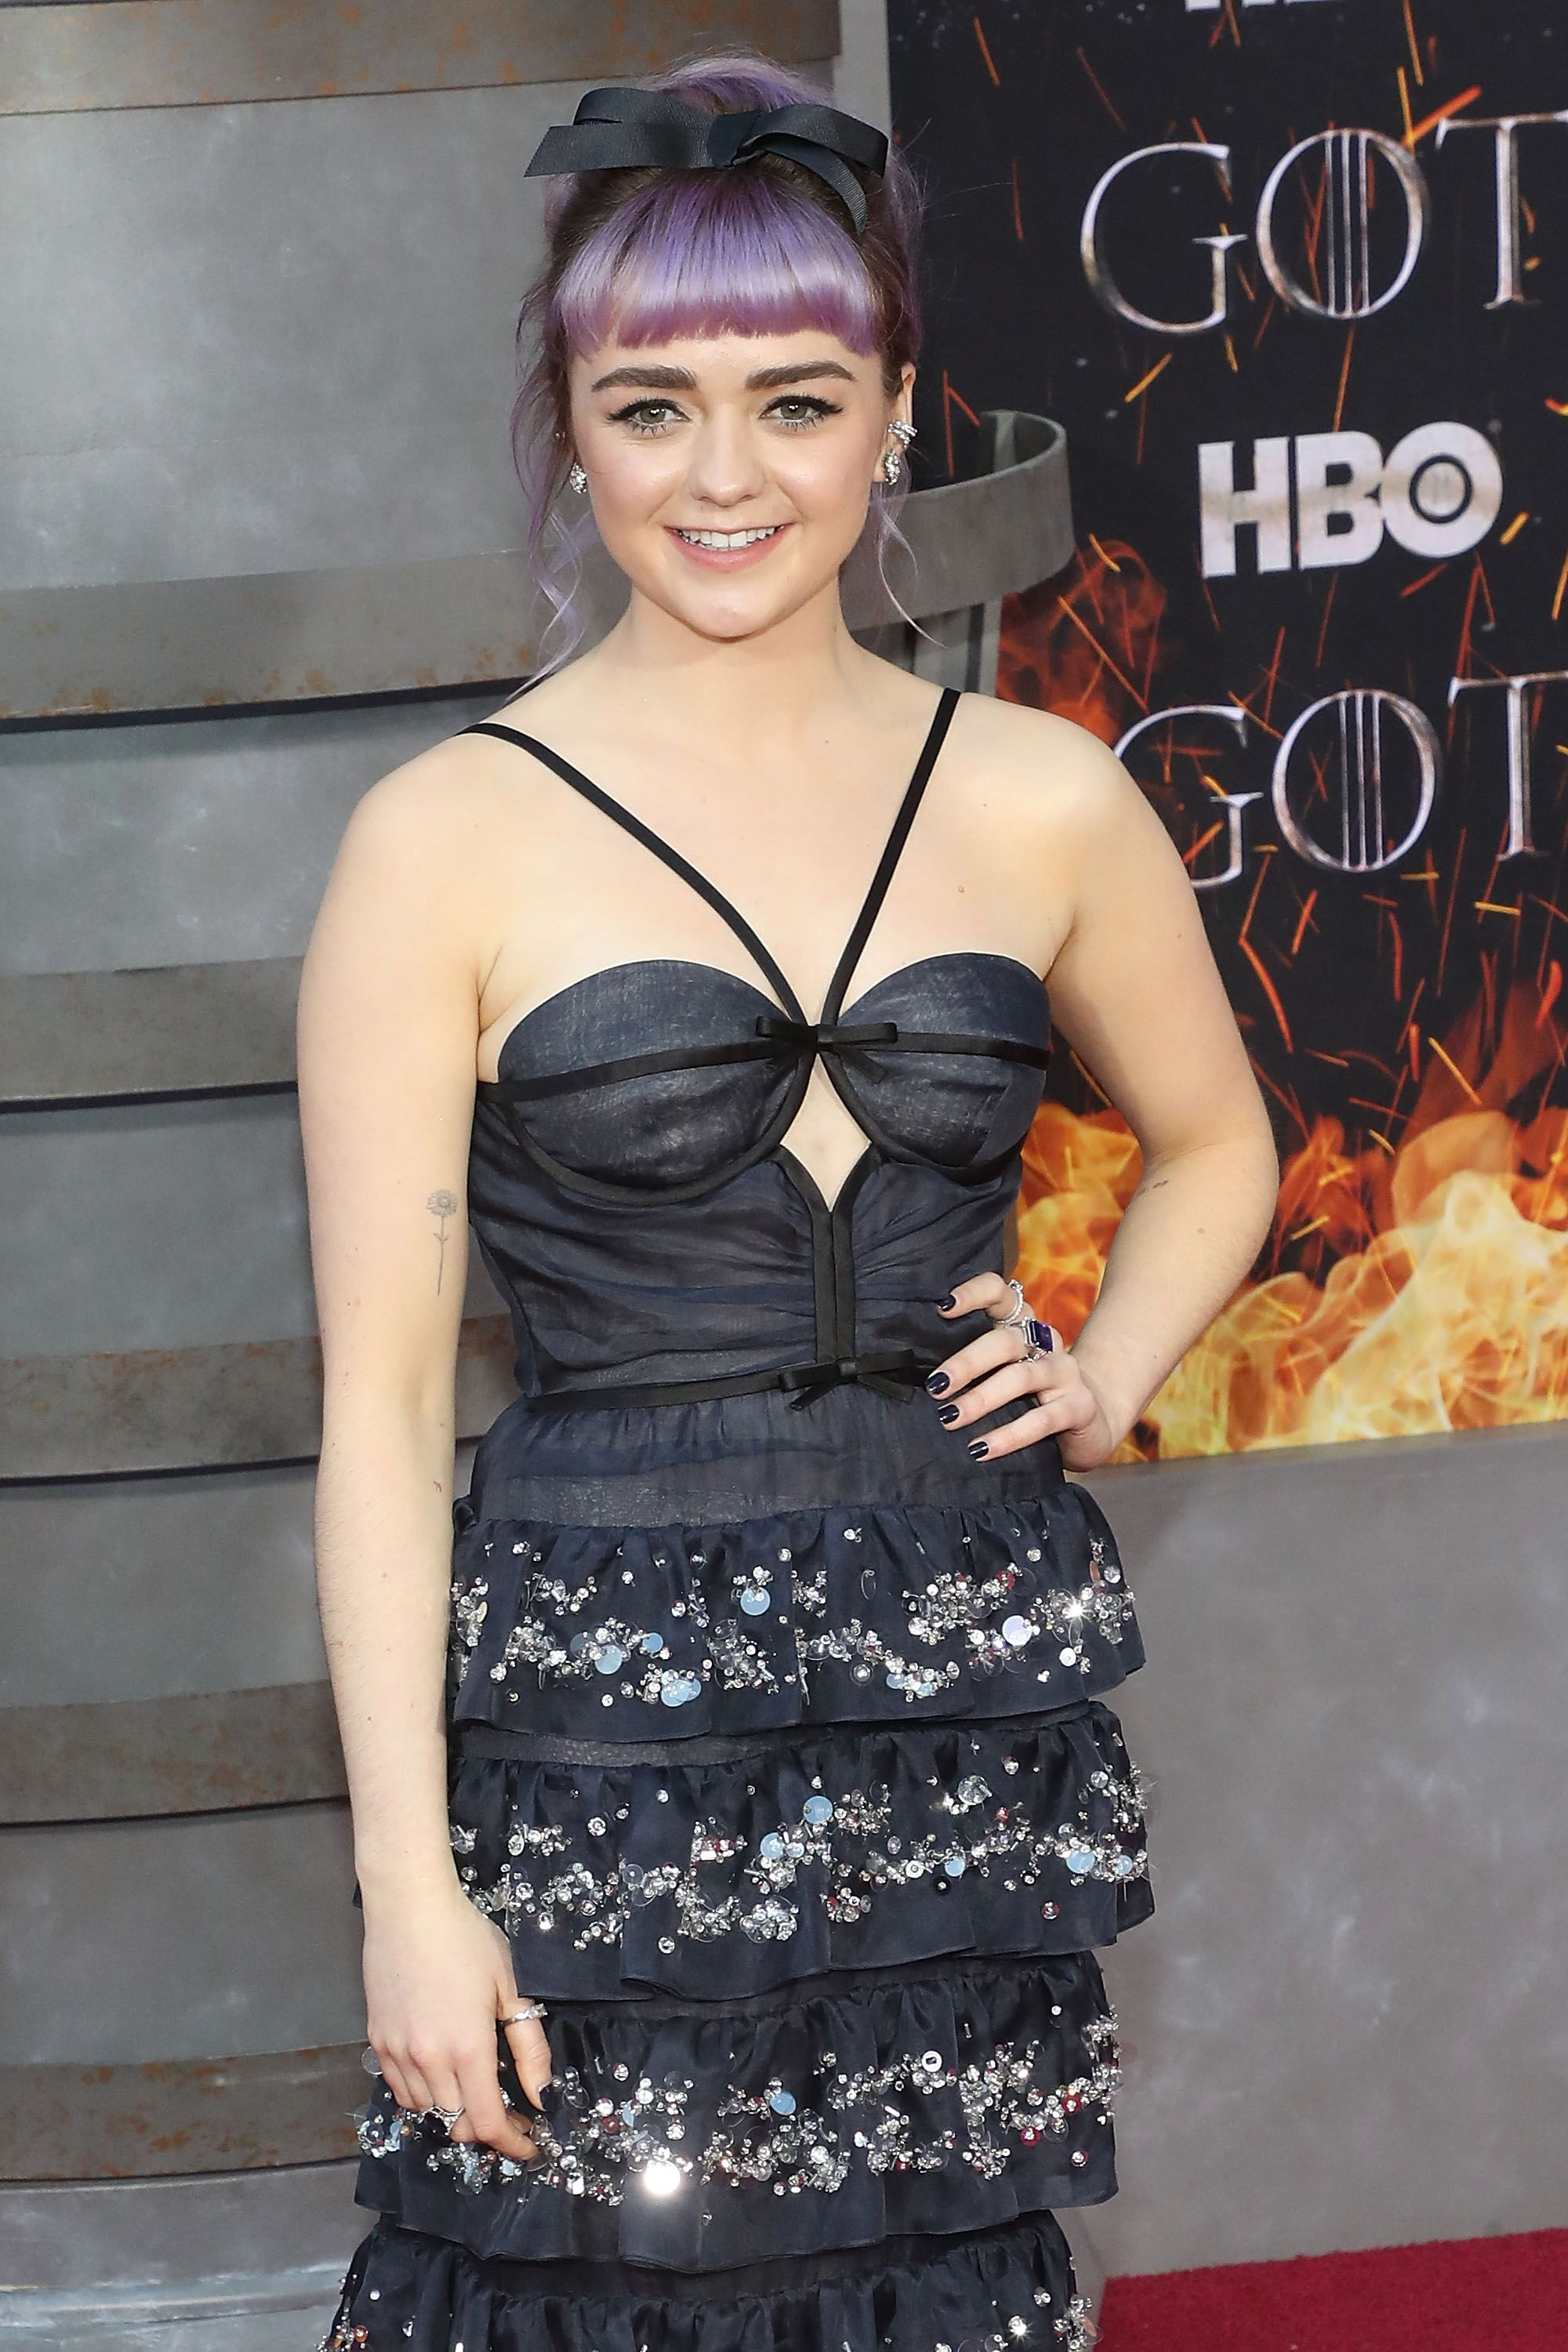 """Maisie Williams at the premiere of """"Game of Thrones"""" at Radio City Music Hall on April 3, 2019 in New York City   Photo: Getty Images"""